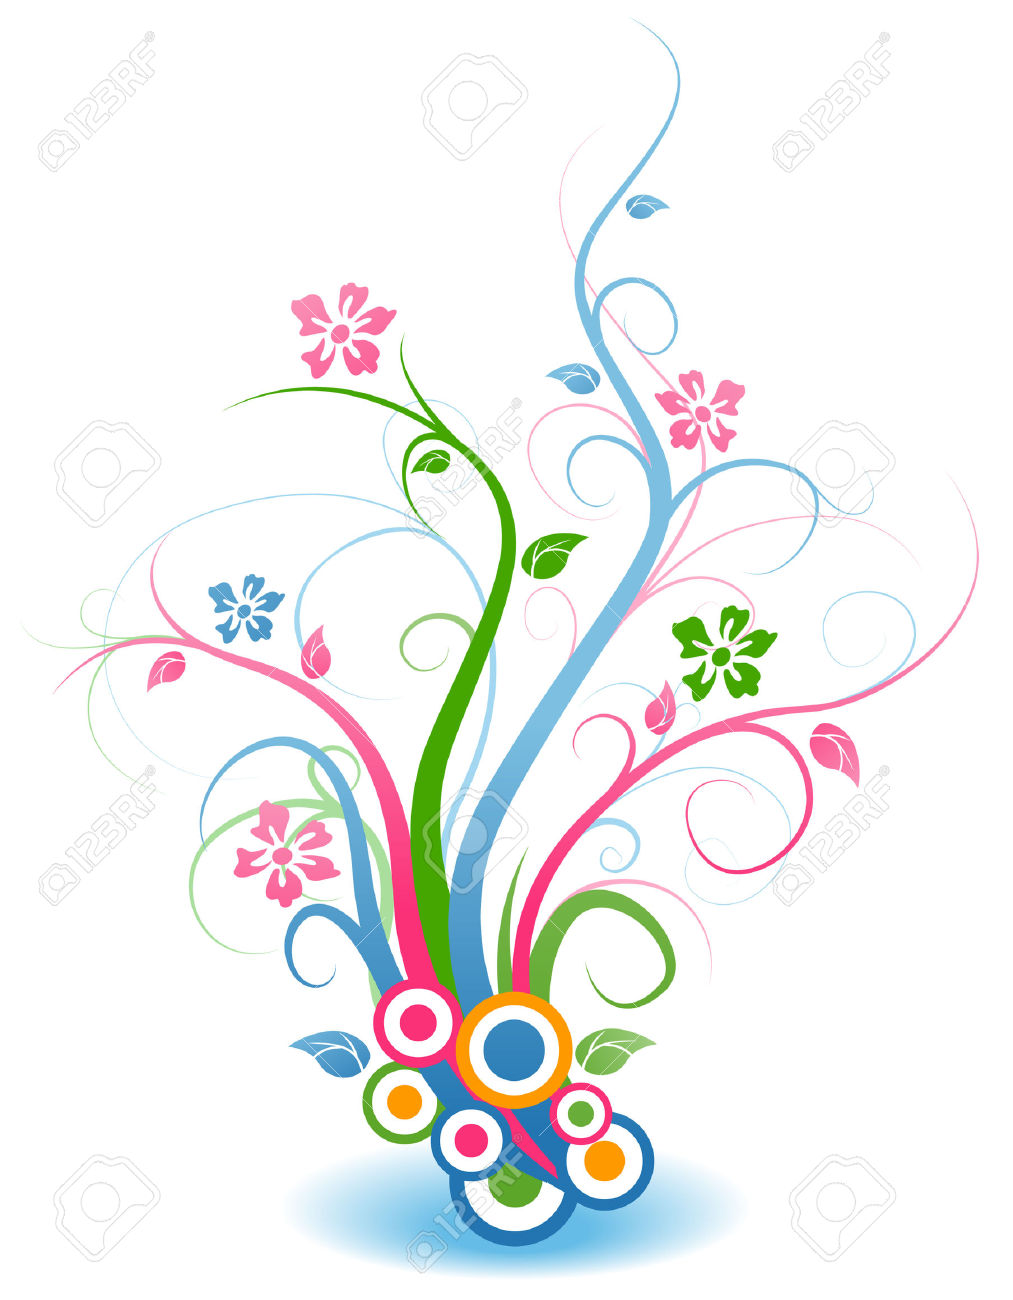 Clipart flowers and vines vector freeuse stock Floral Vines Royalty Free Cliparts, Vectors, And Stock ... vector freeuse stock